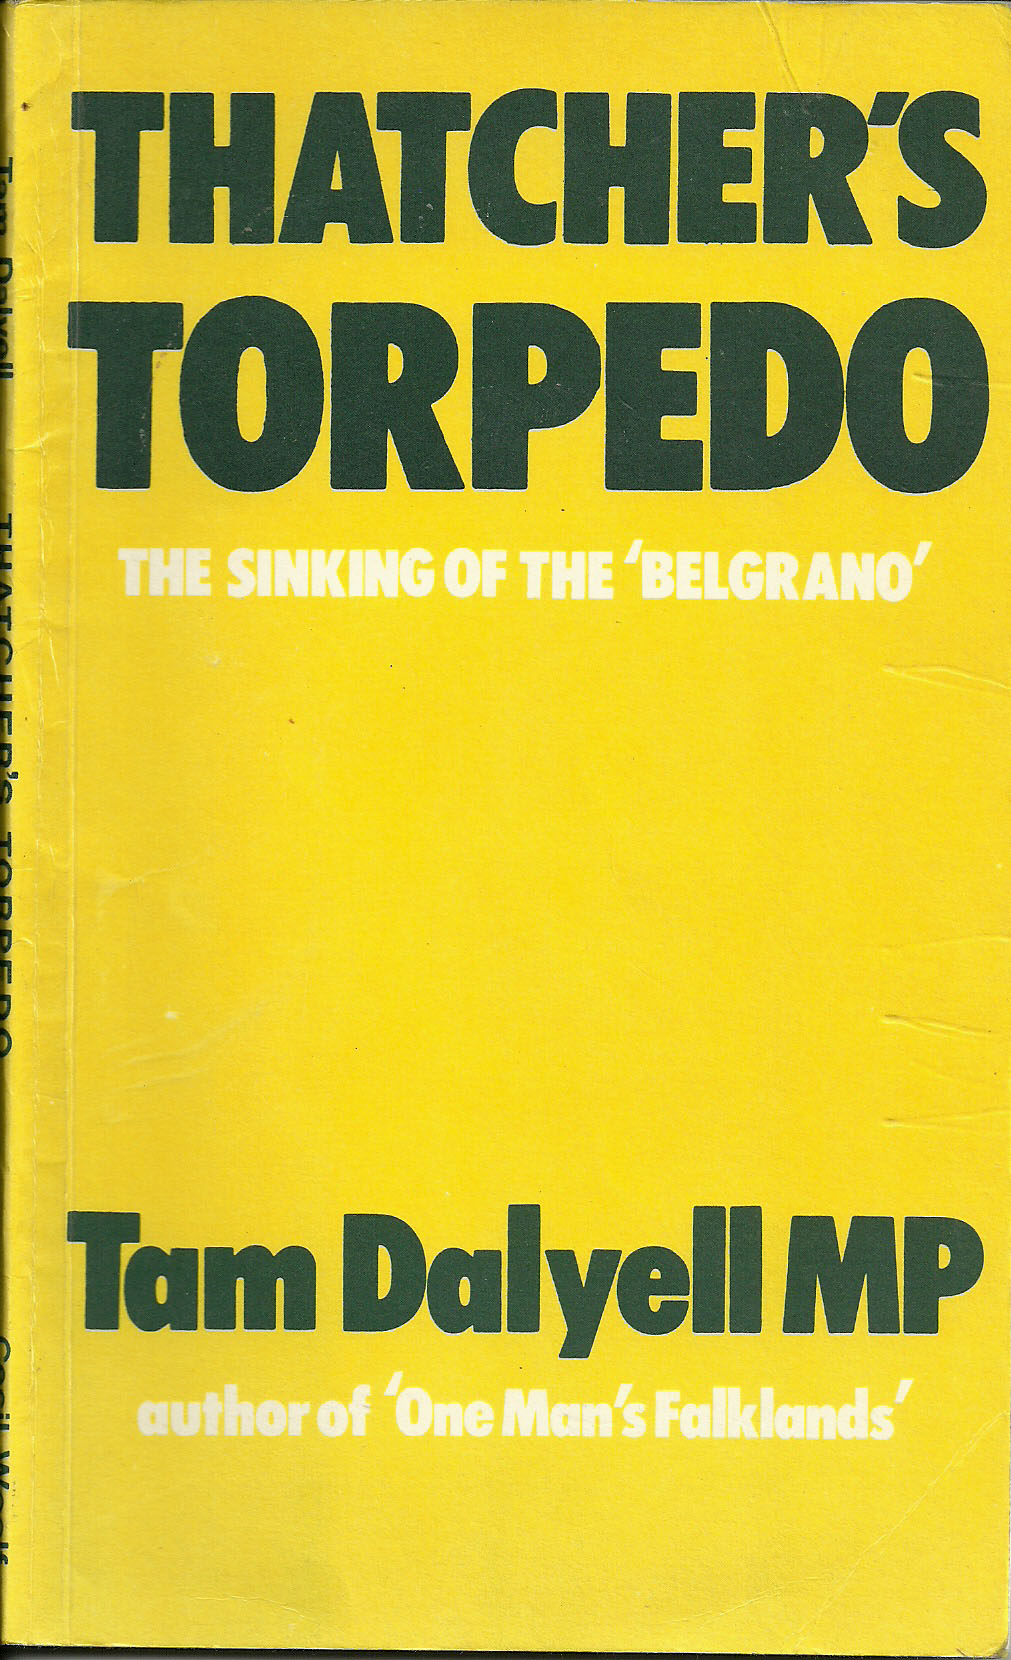 Thatchers Torpedo, The Sinking of the Belgrano, by Tam Dalyell MP